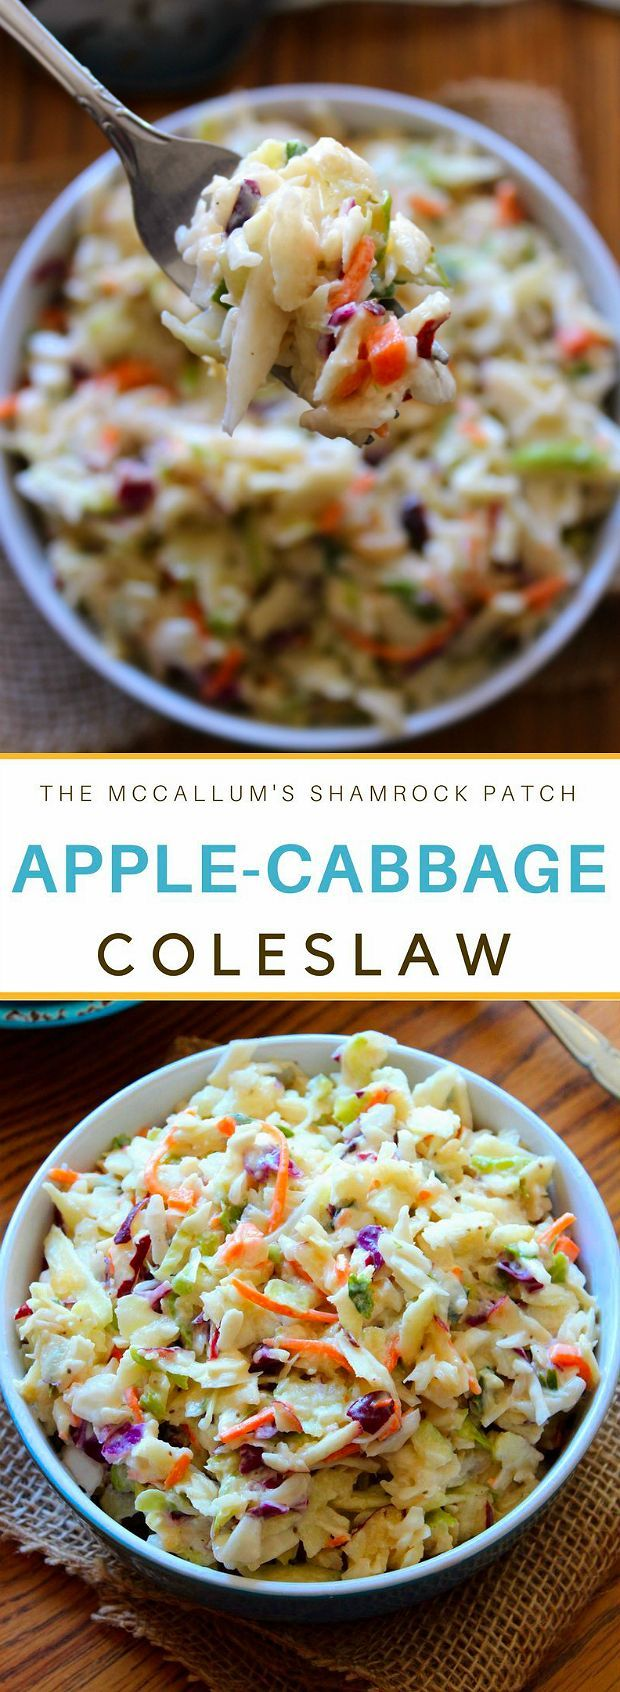 Apple-Cabbage Coleslaw is one of those deliciously refreshing side dishes that will compliment most of your grilled menu items; such as chicken, fish, or even pork. Made with crisp green cabbage, p…